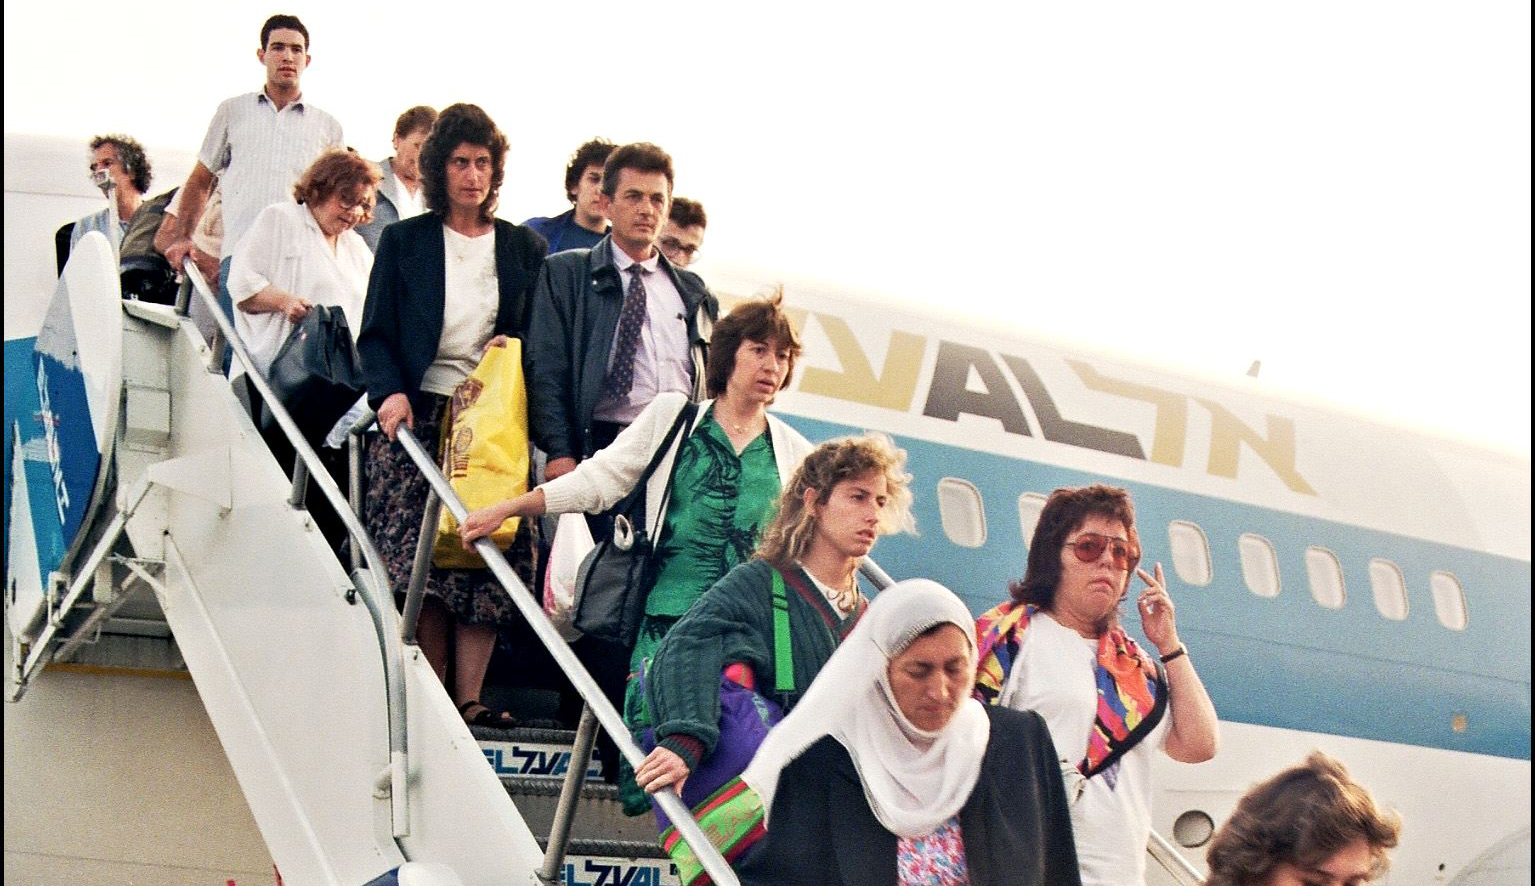 Soviet Jews from Moscow disembark at Ben-Gurion Airport on August 20, 1991. SVEN NACKSTRAND/AFP via Getty Images.